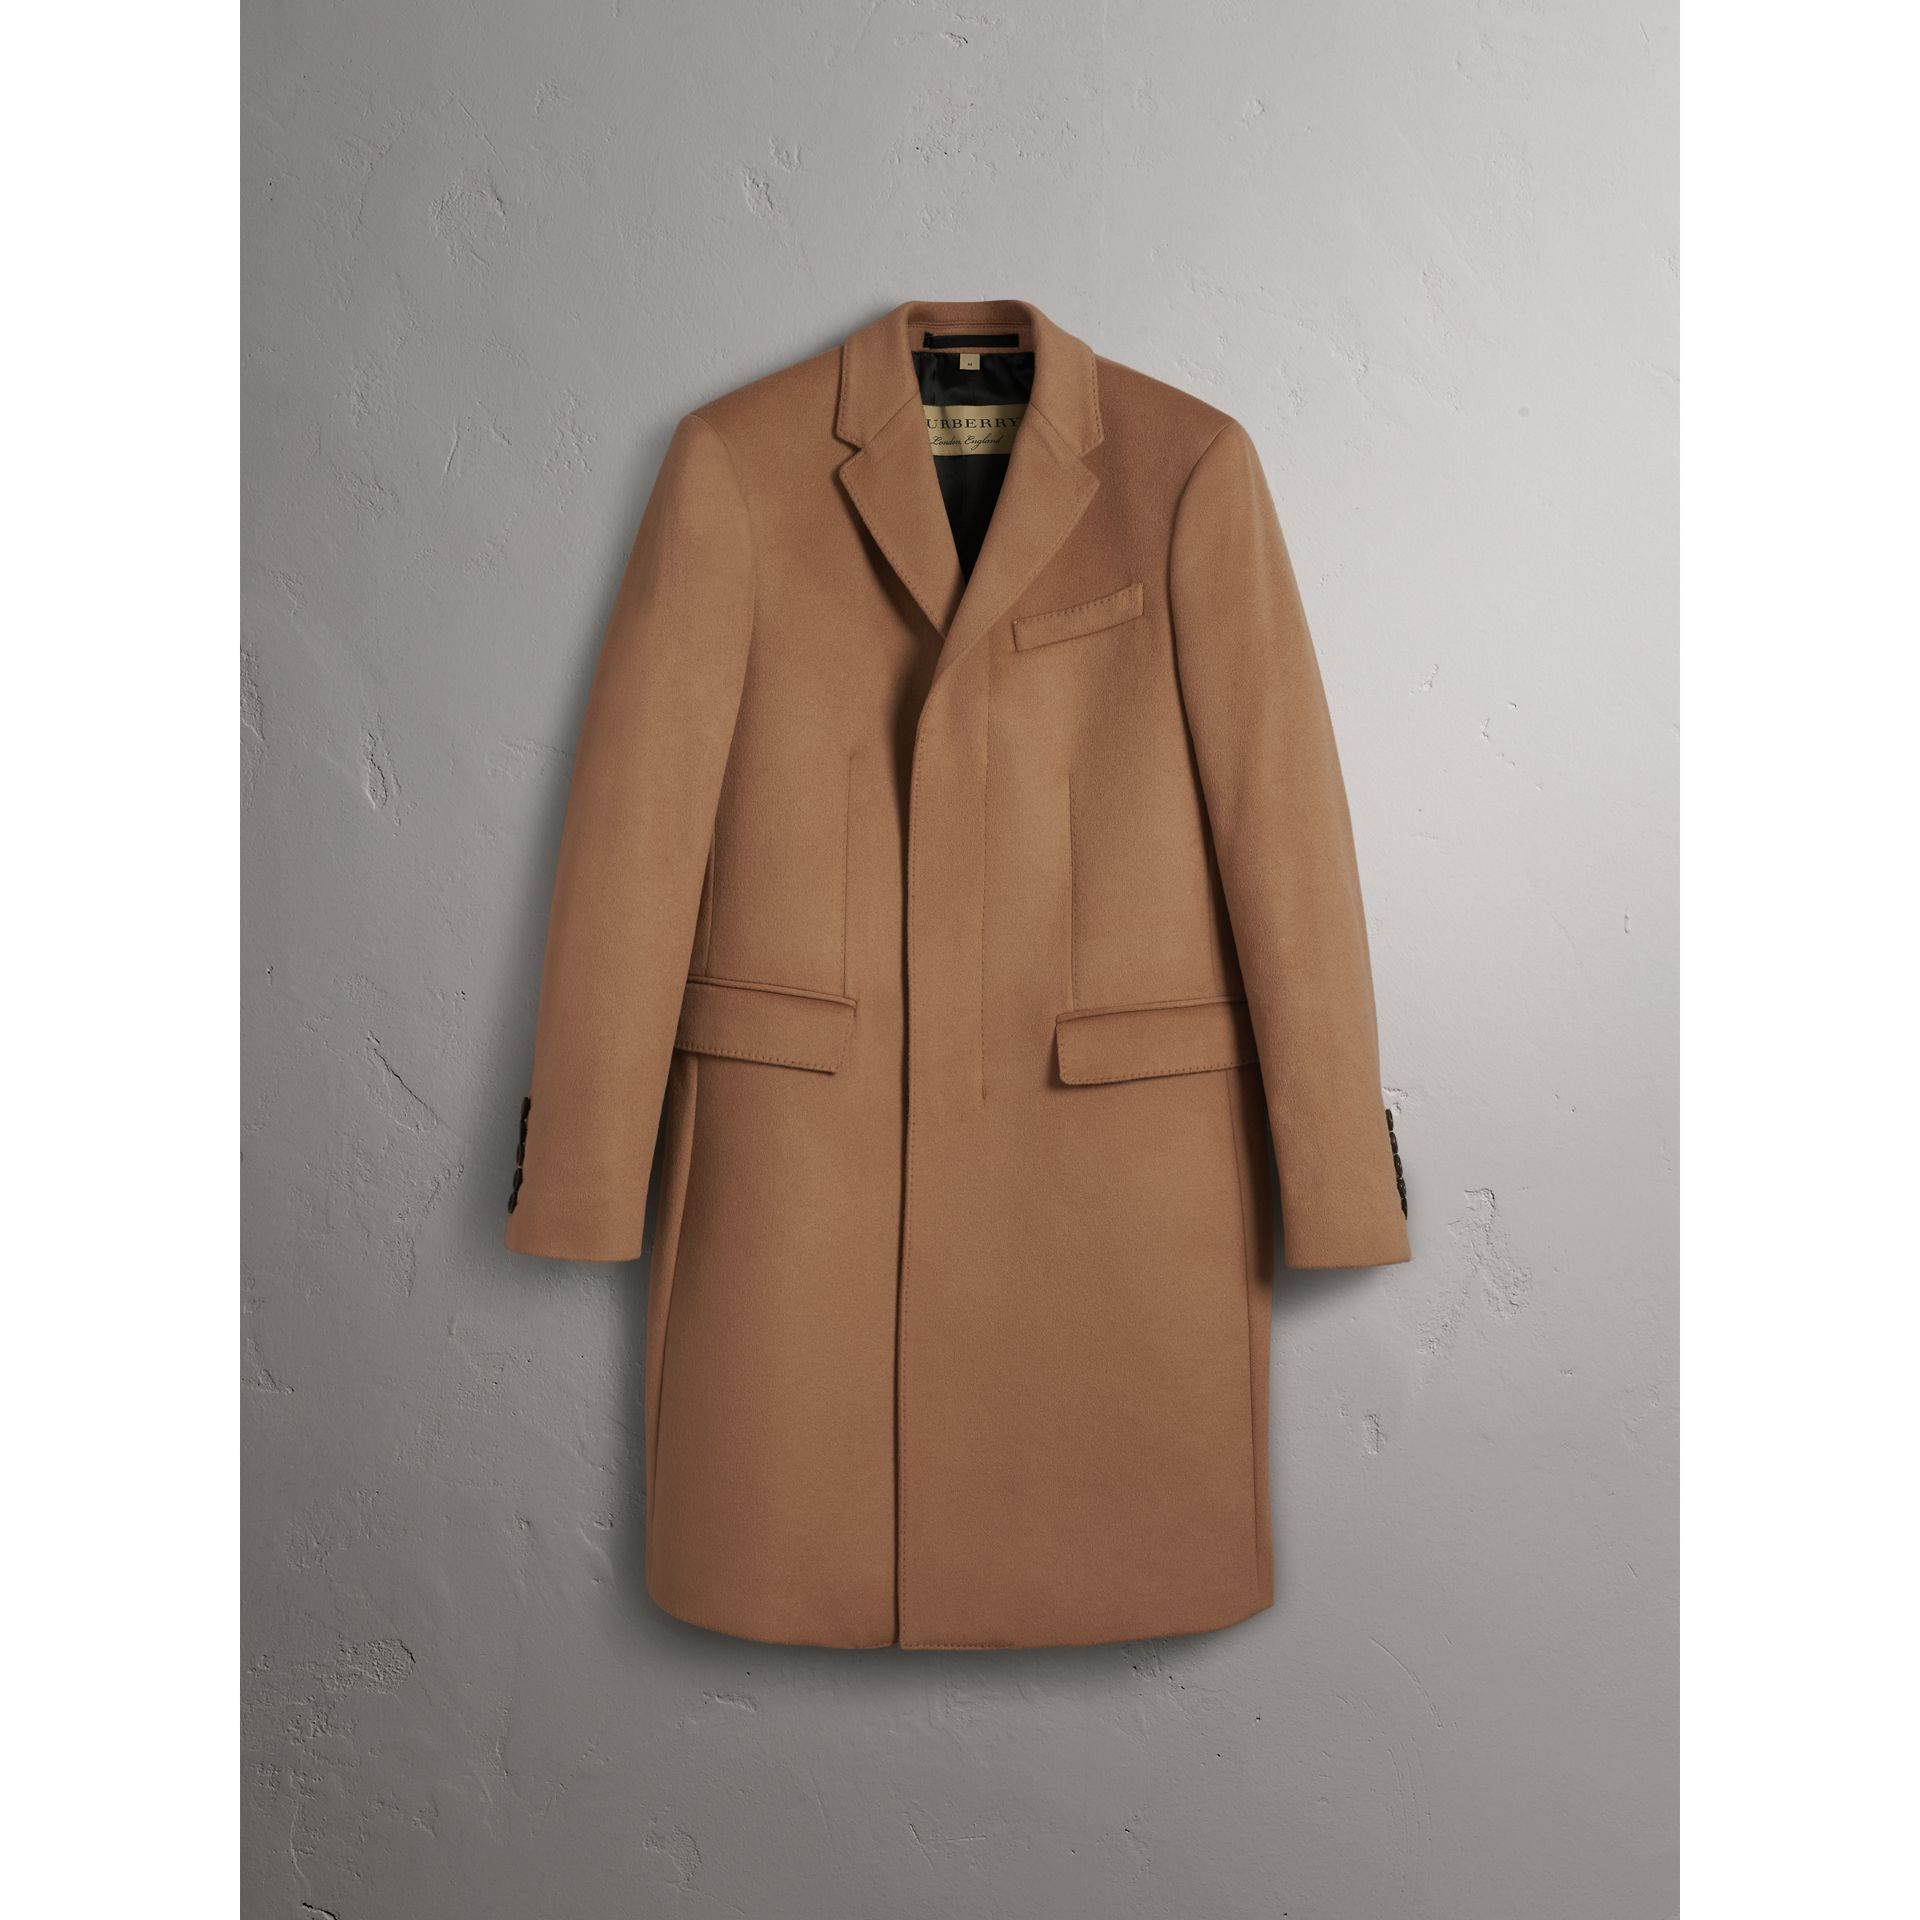 Wool Cashmere Tailored Coat in Camel - Men | Burberry Australia - gallery image 3